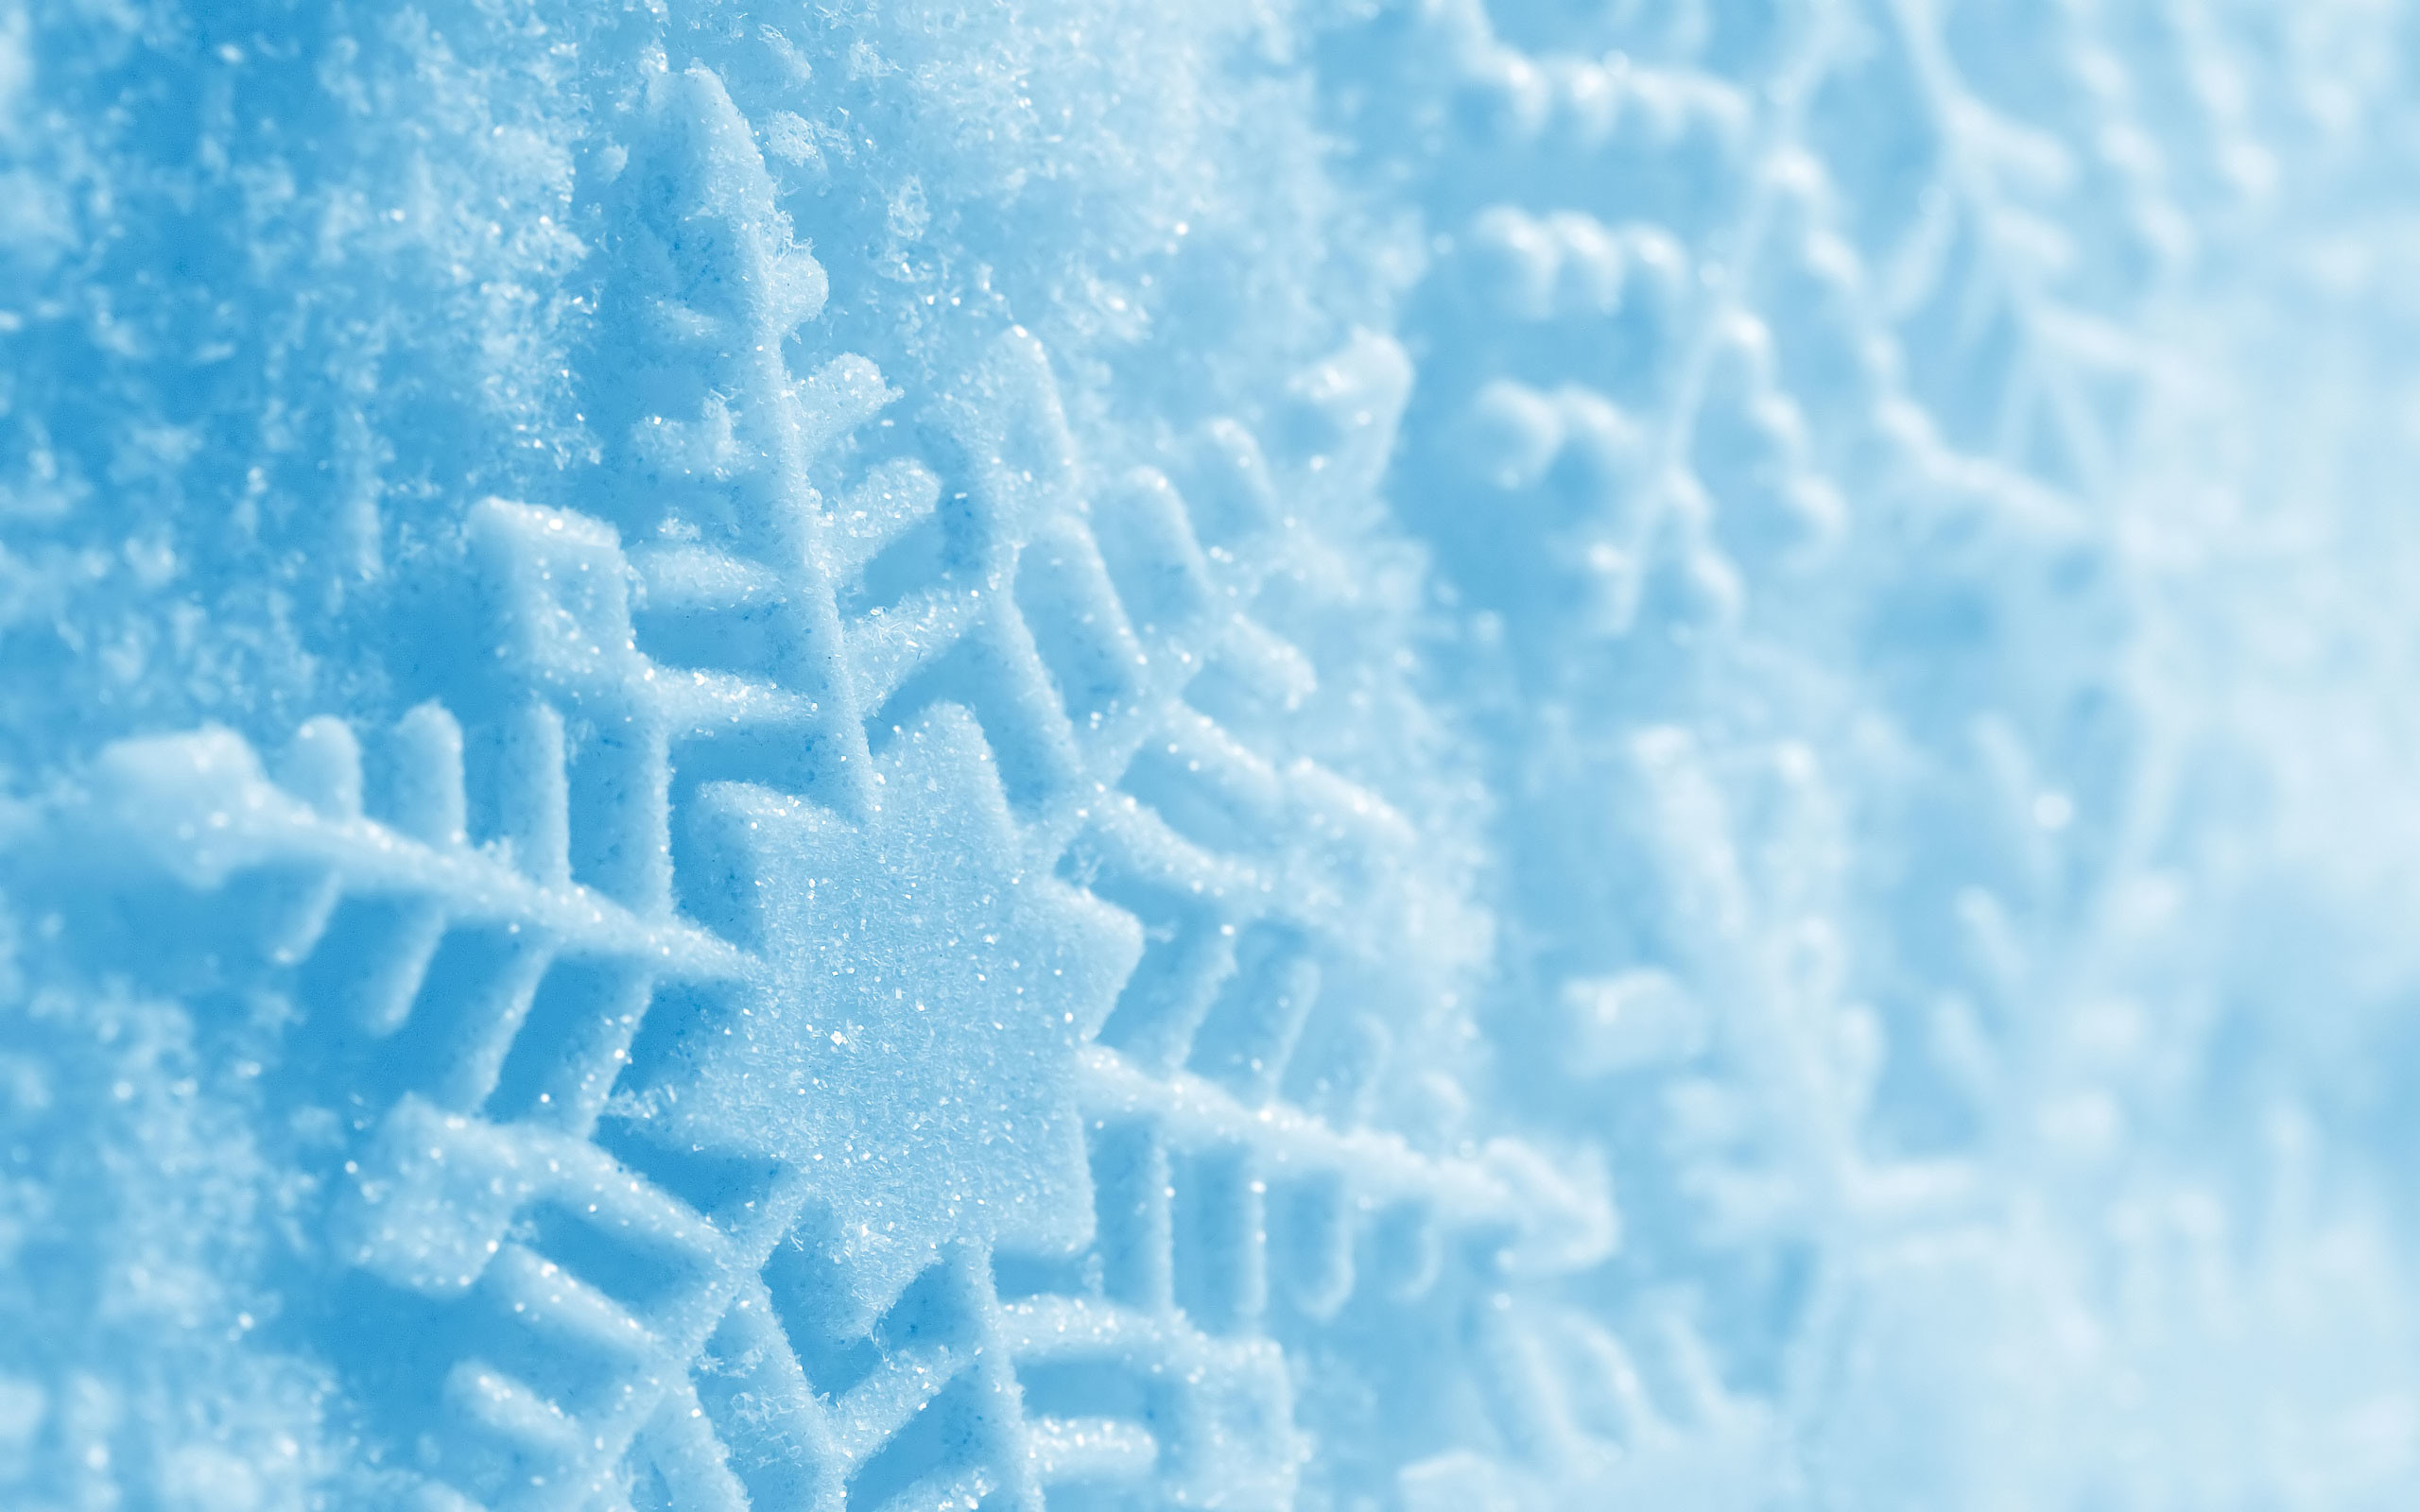 Animated Snow Falling Wallpaper Free Download Falling Snow Animated Wallpaper 57 Images